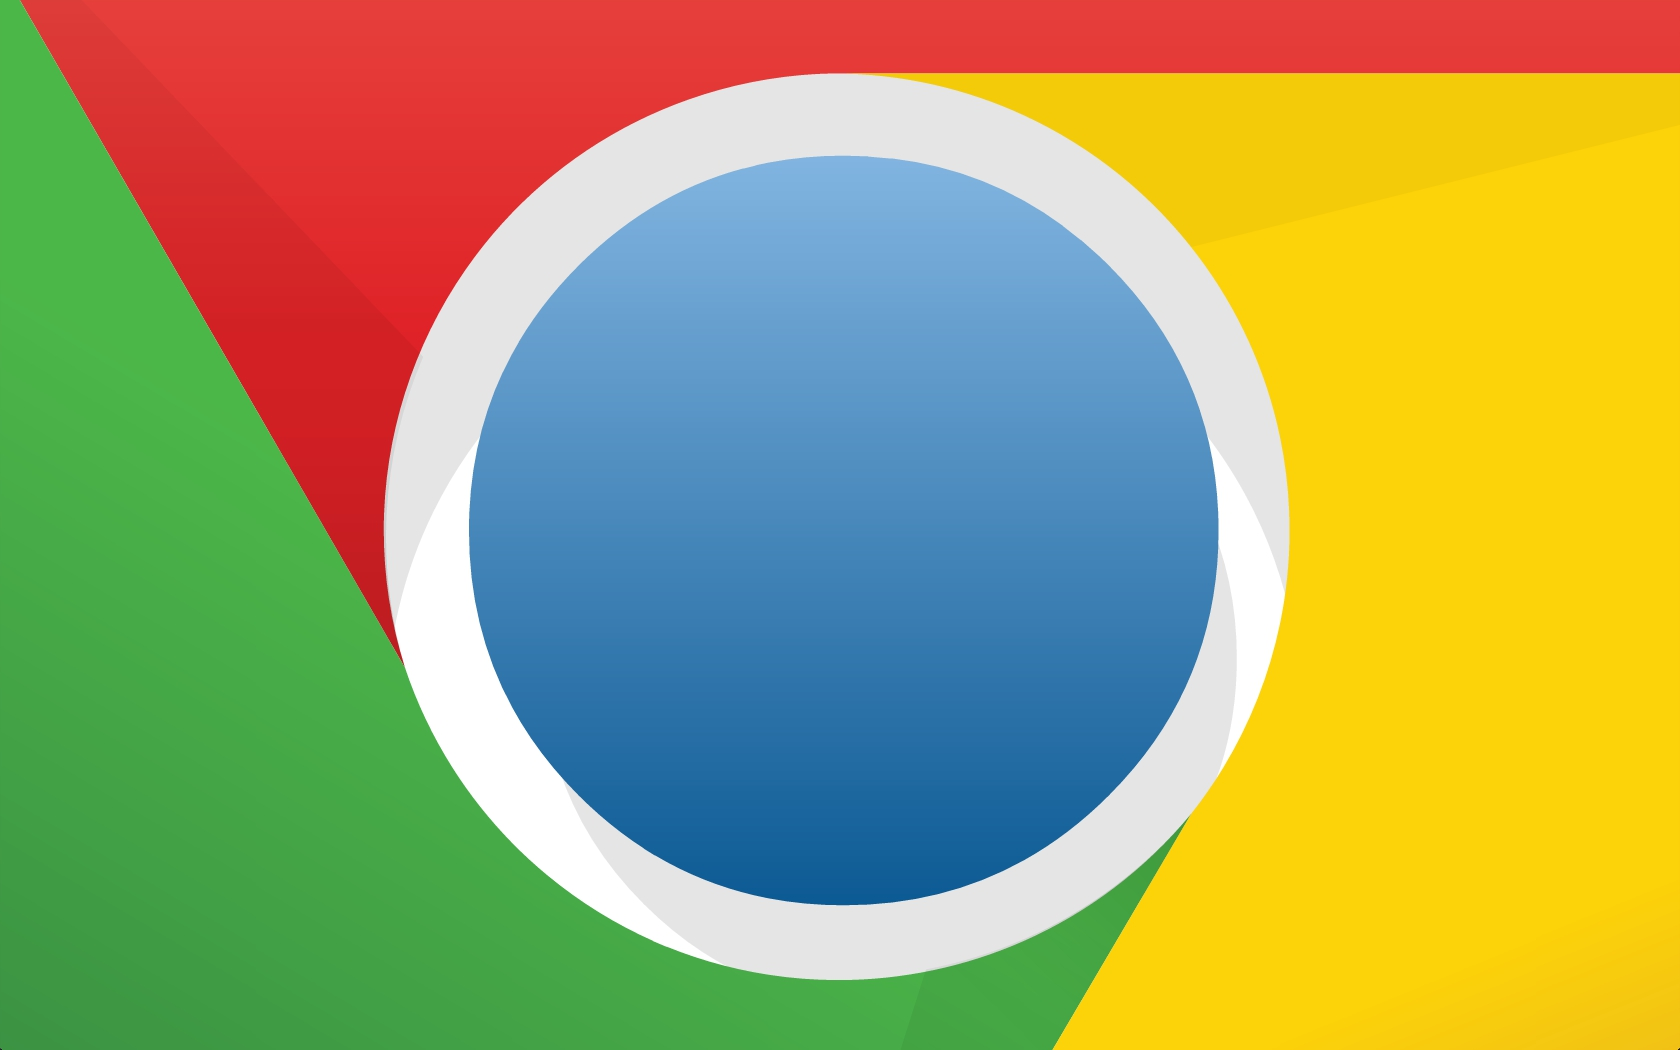 Google Chrome receives update, users gain greater control